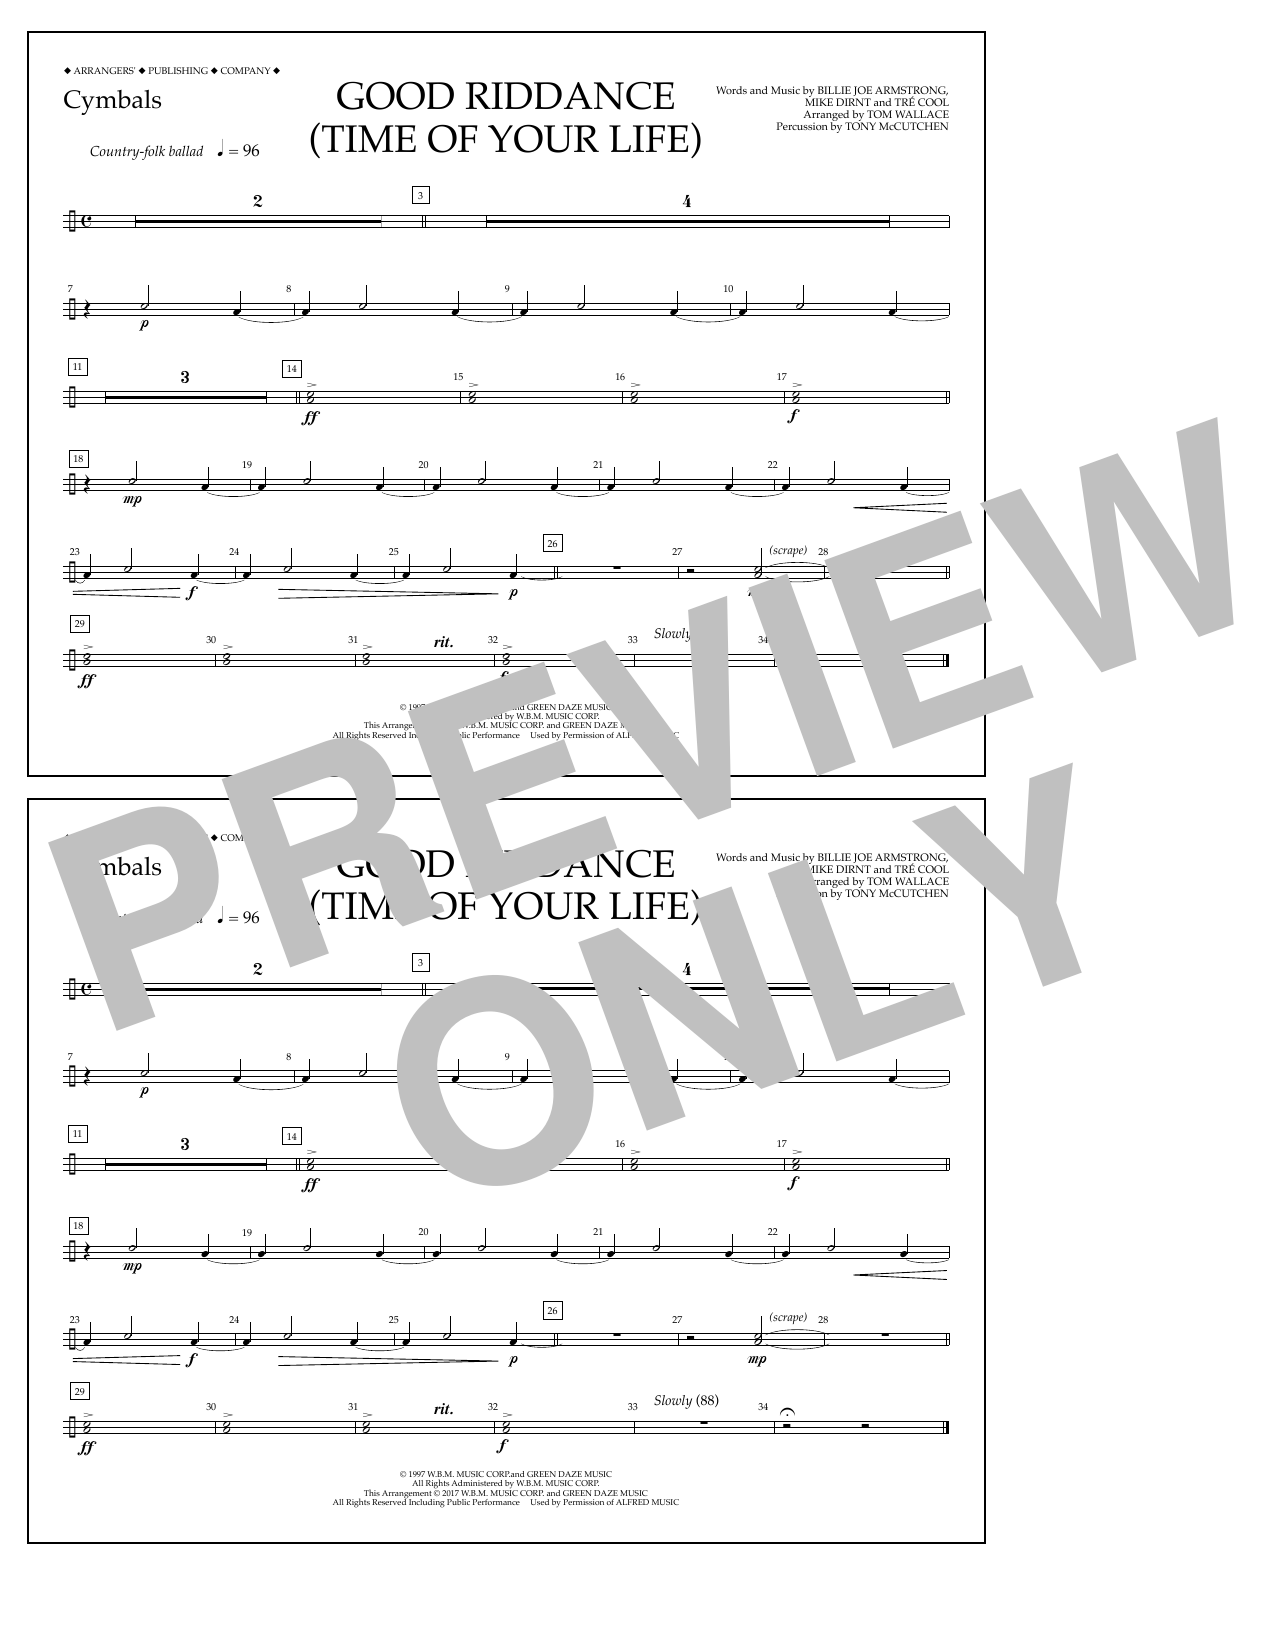 Good Riddance (Time of Your Life) - Cymbals Sheet Music